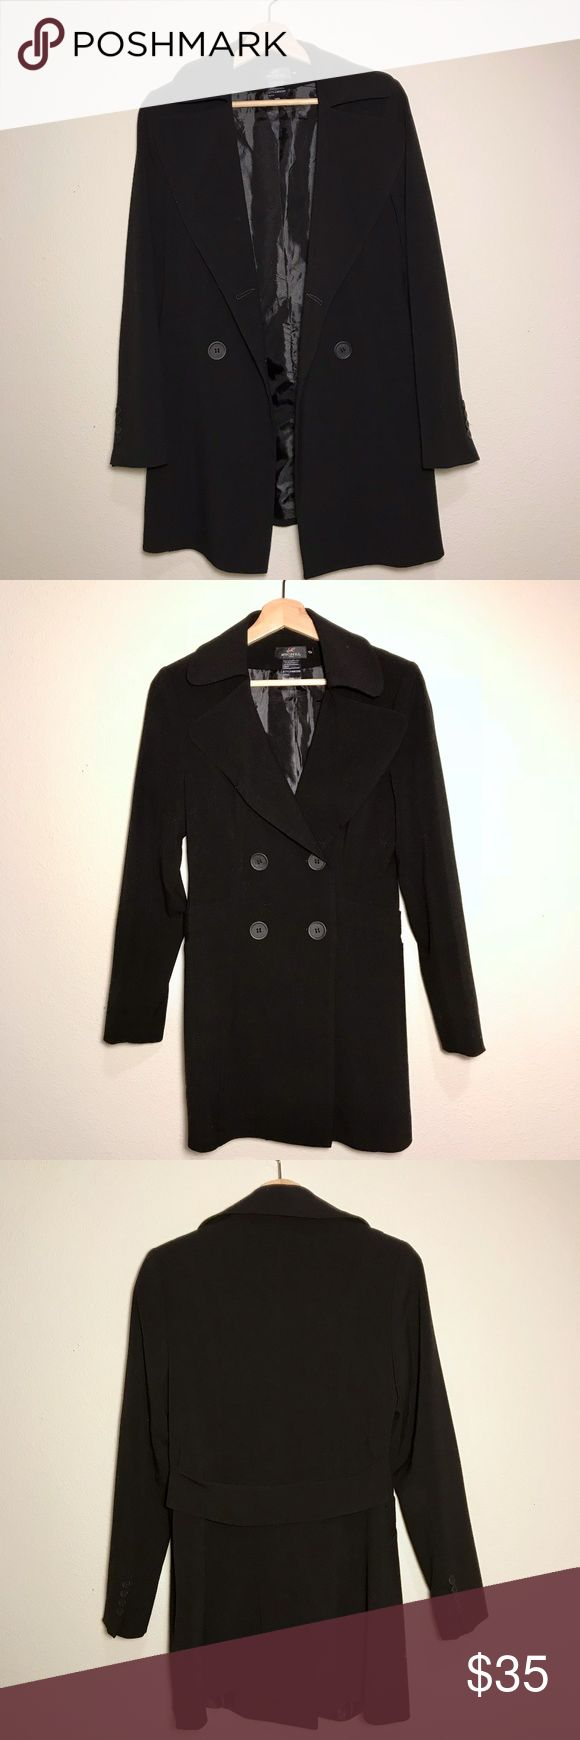 Women's Black Trench Coat Perfect coat for the fall. Not to thick, not too thin, just right. Jackets & Coats Trench Coats